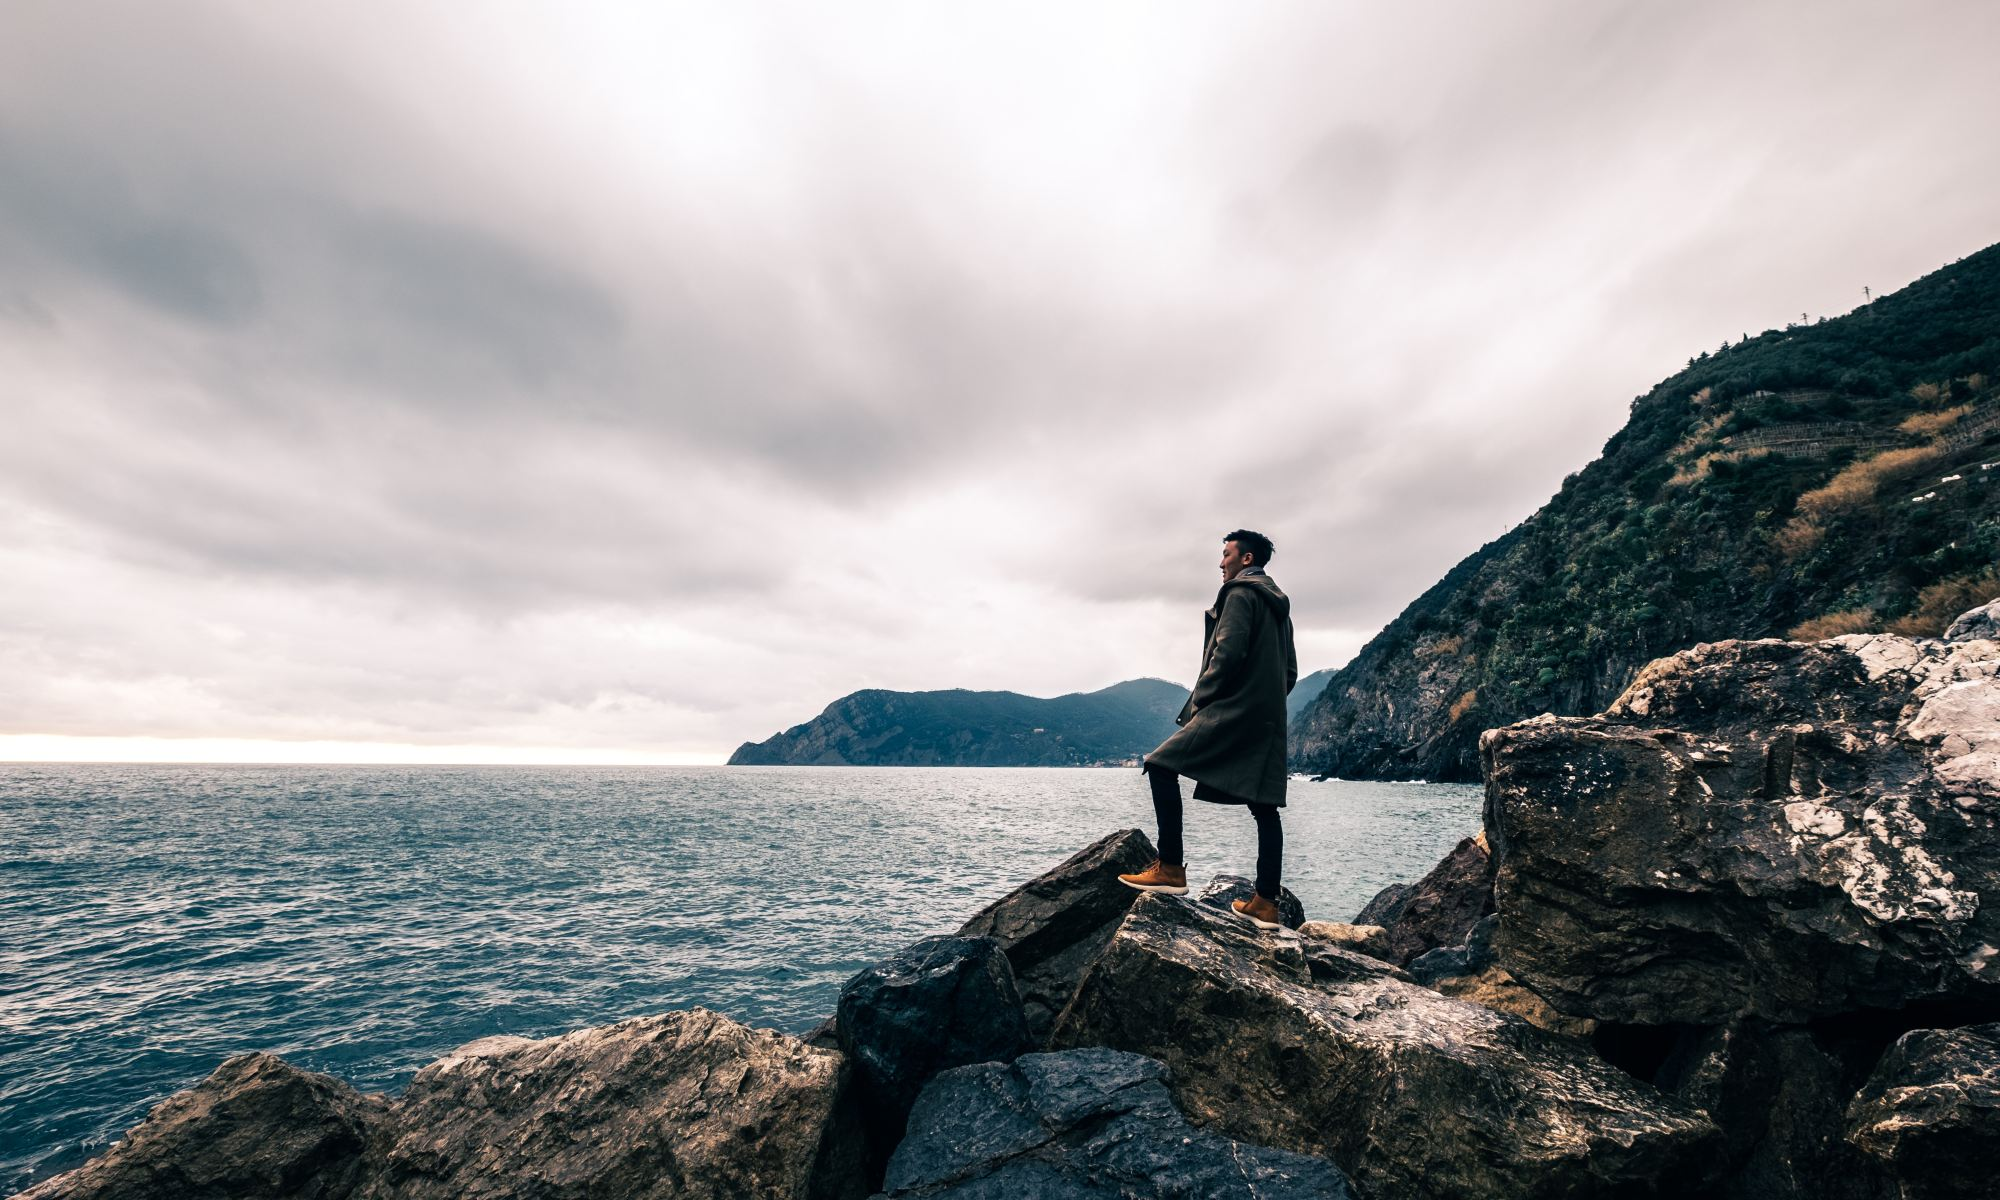 Motivated young man standing on boulder near body of water